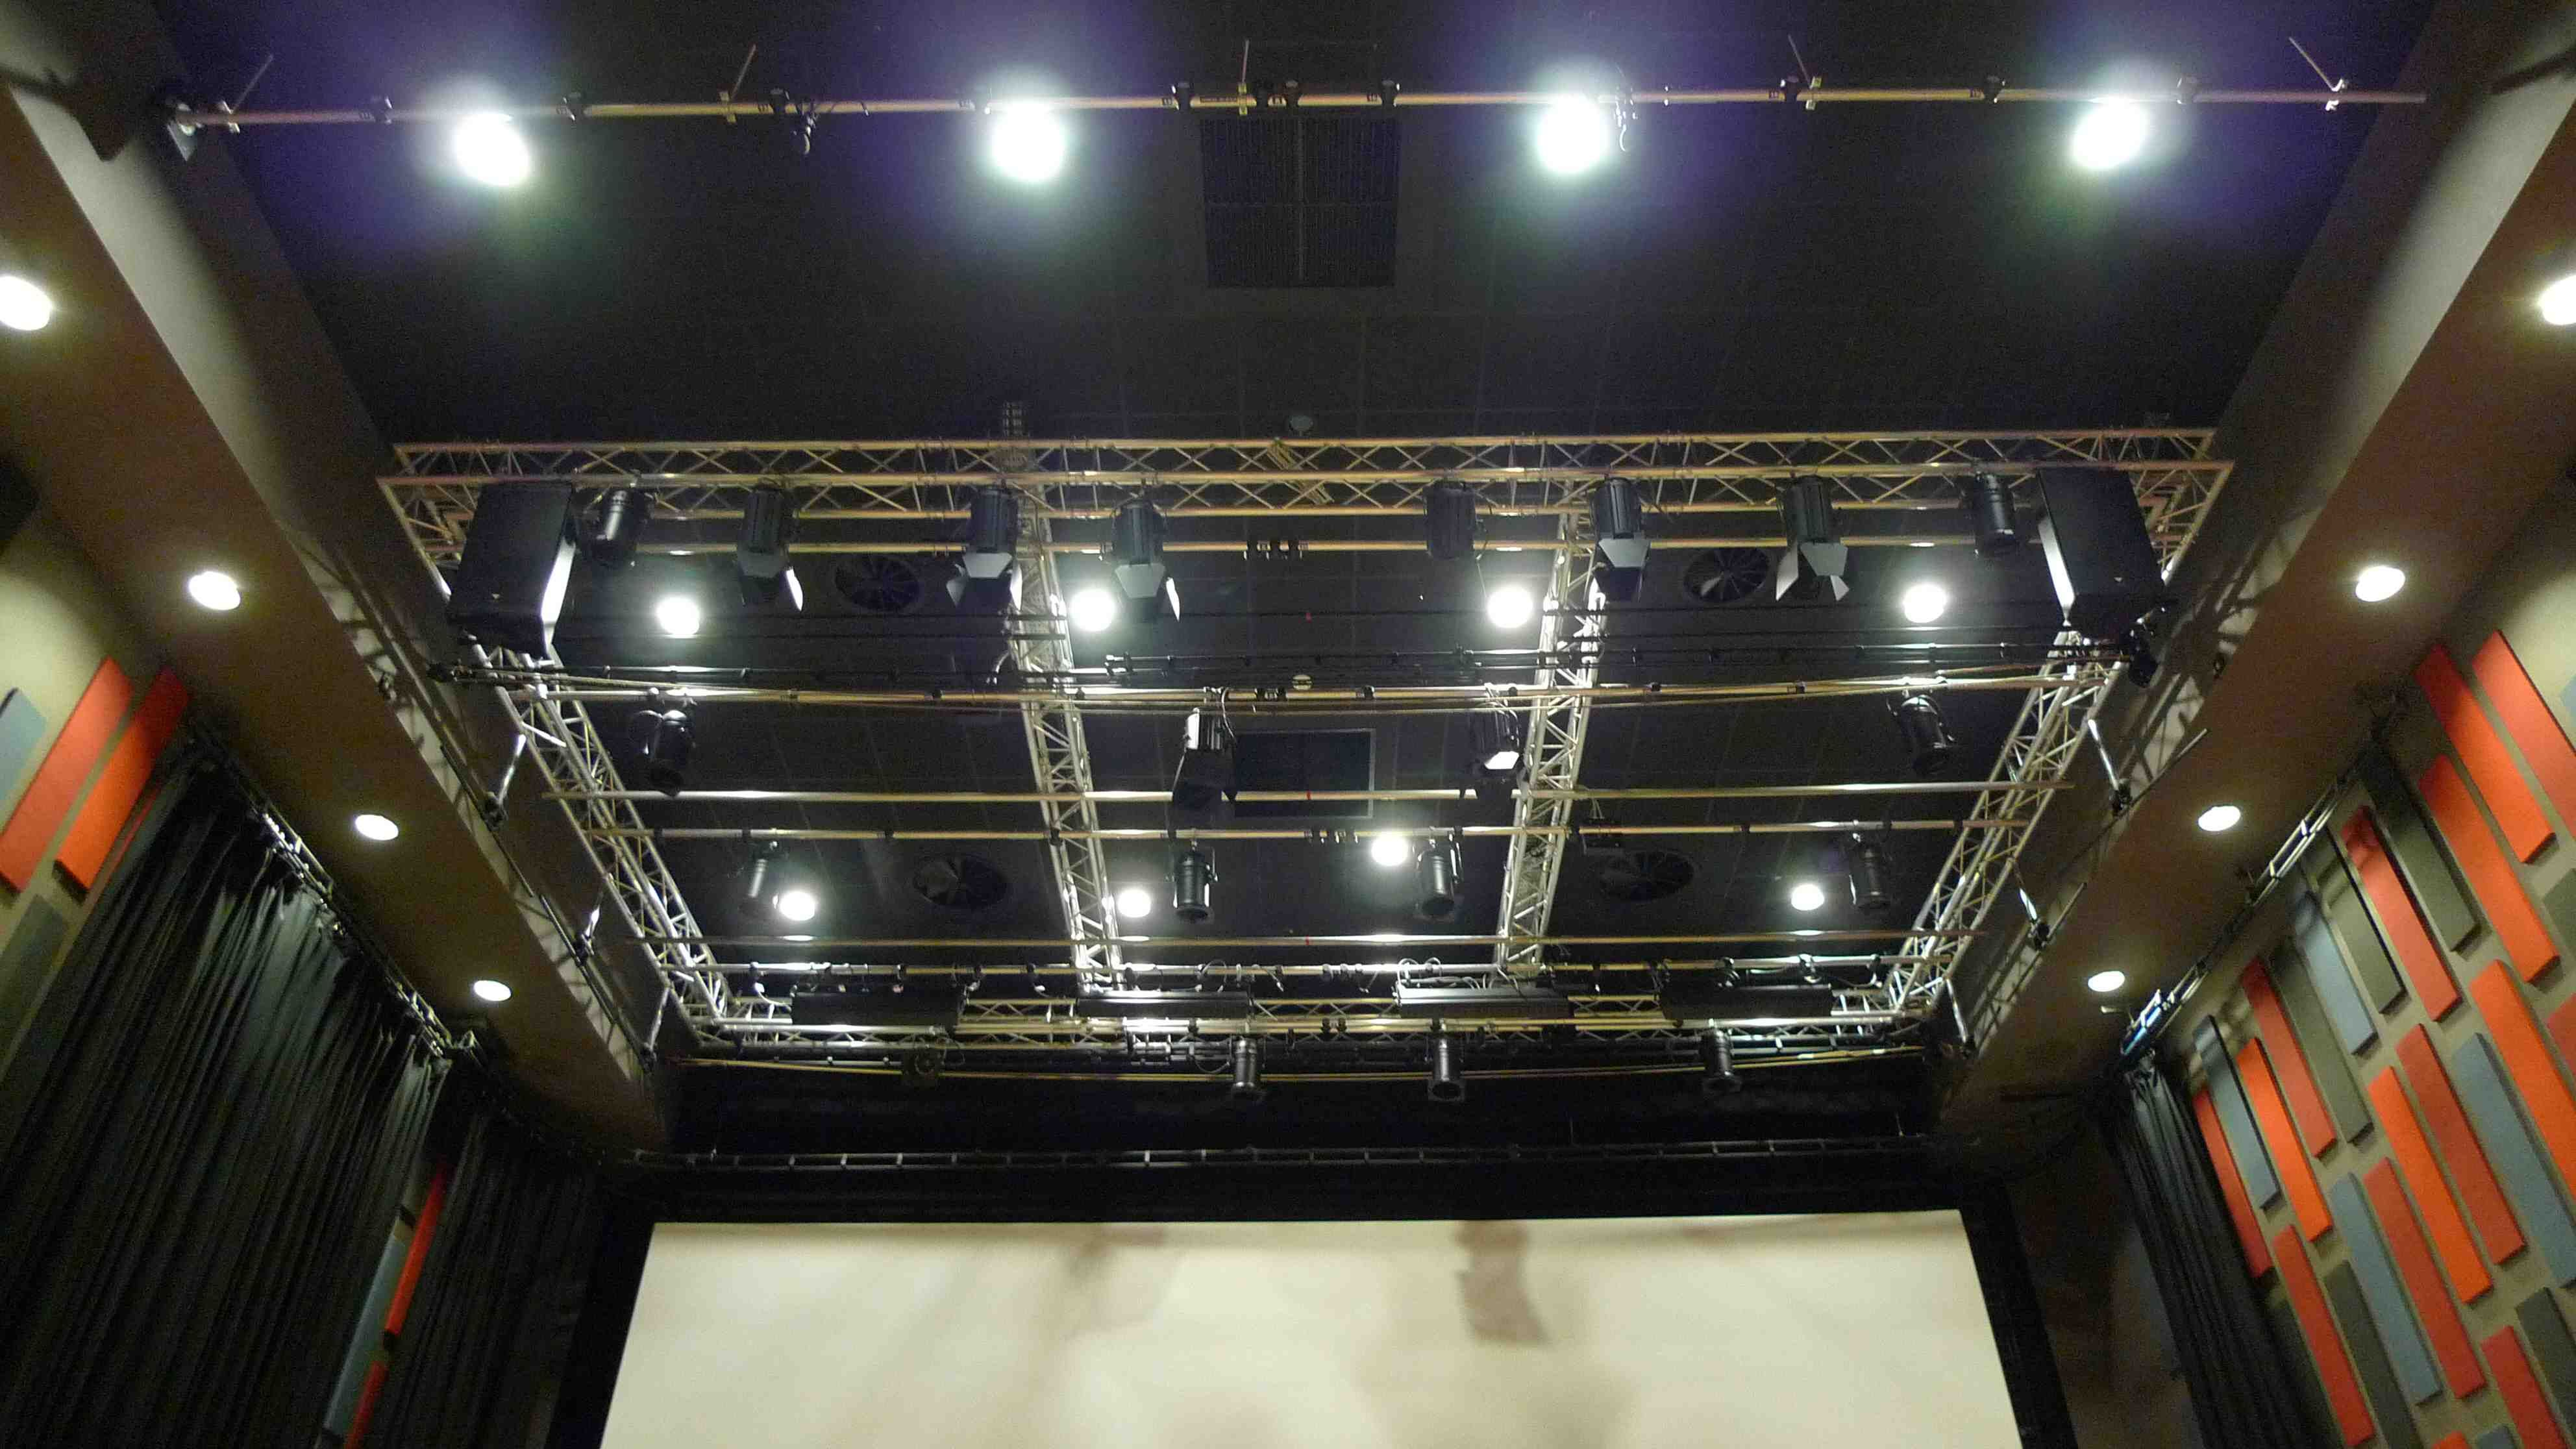 This Is A Lighting Grid In Theatre And My Major